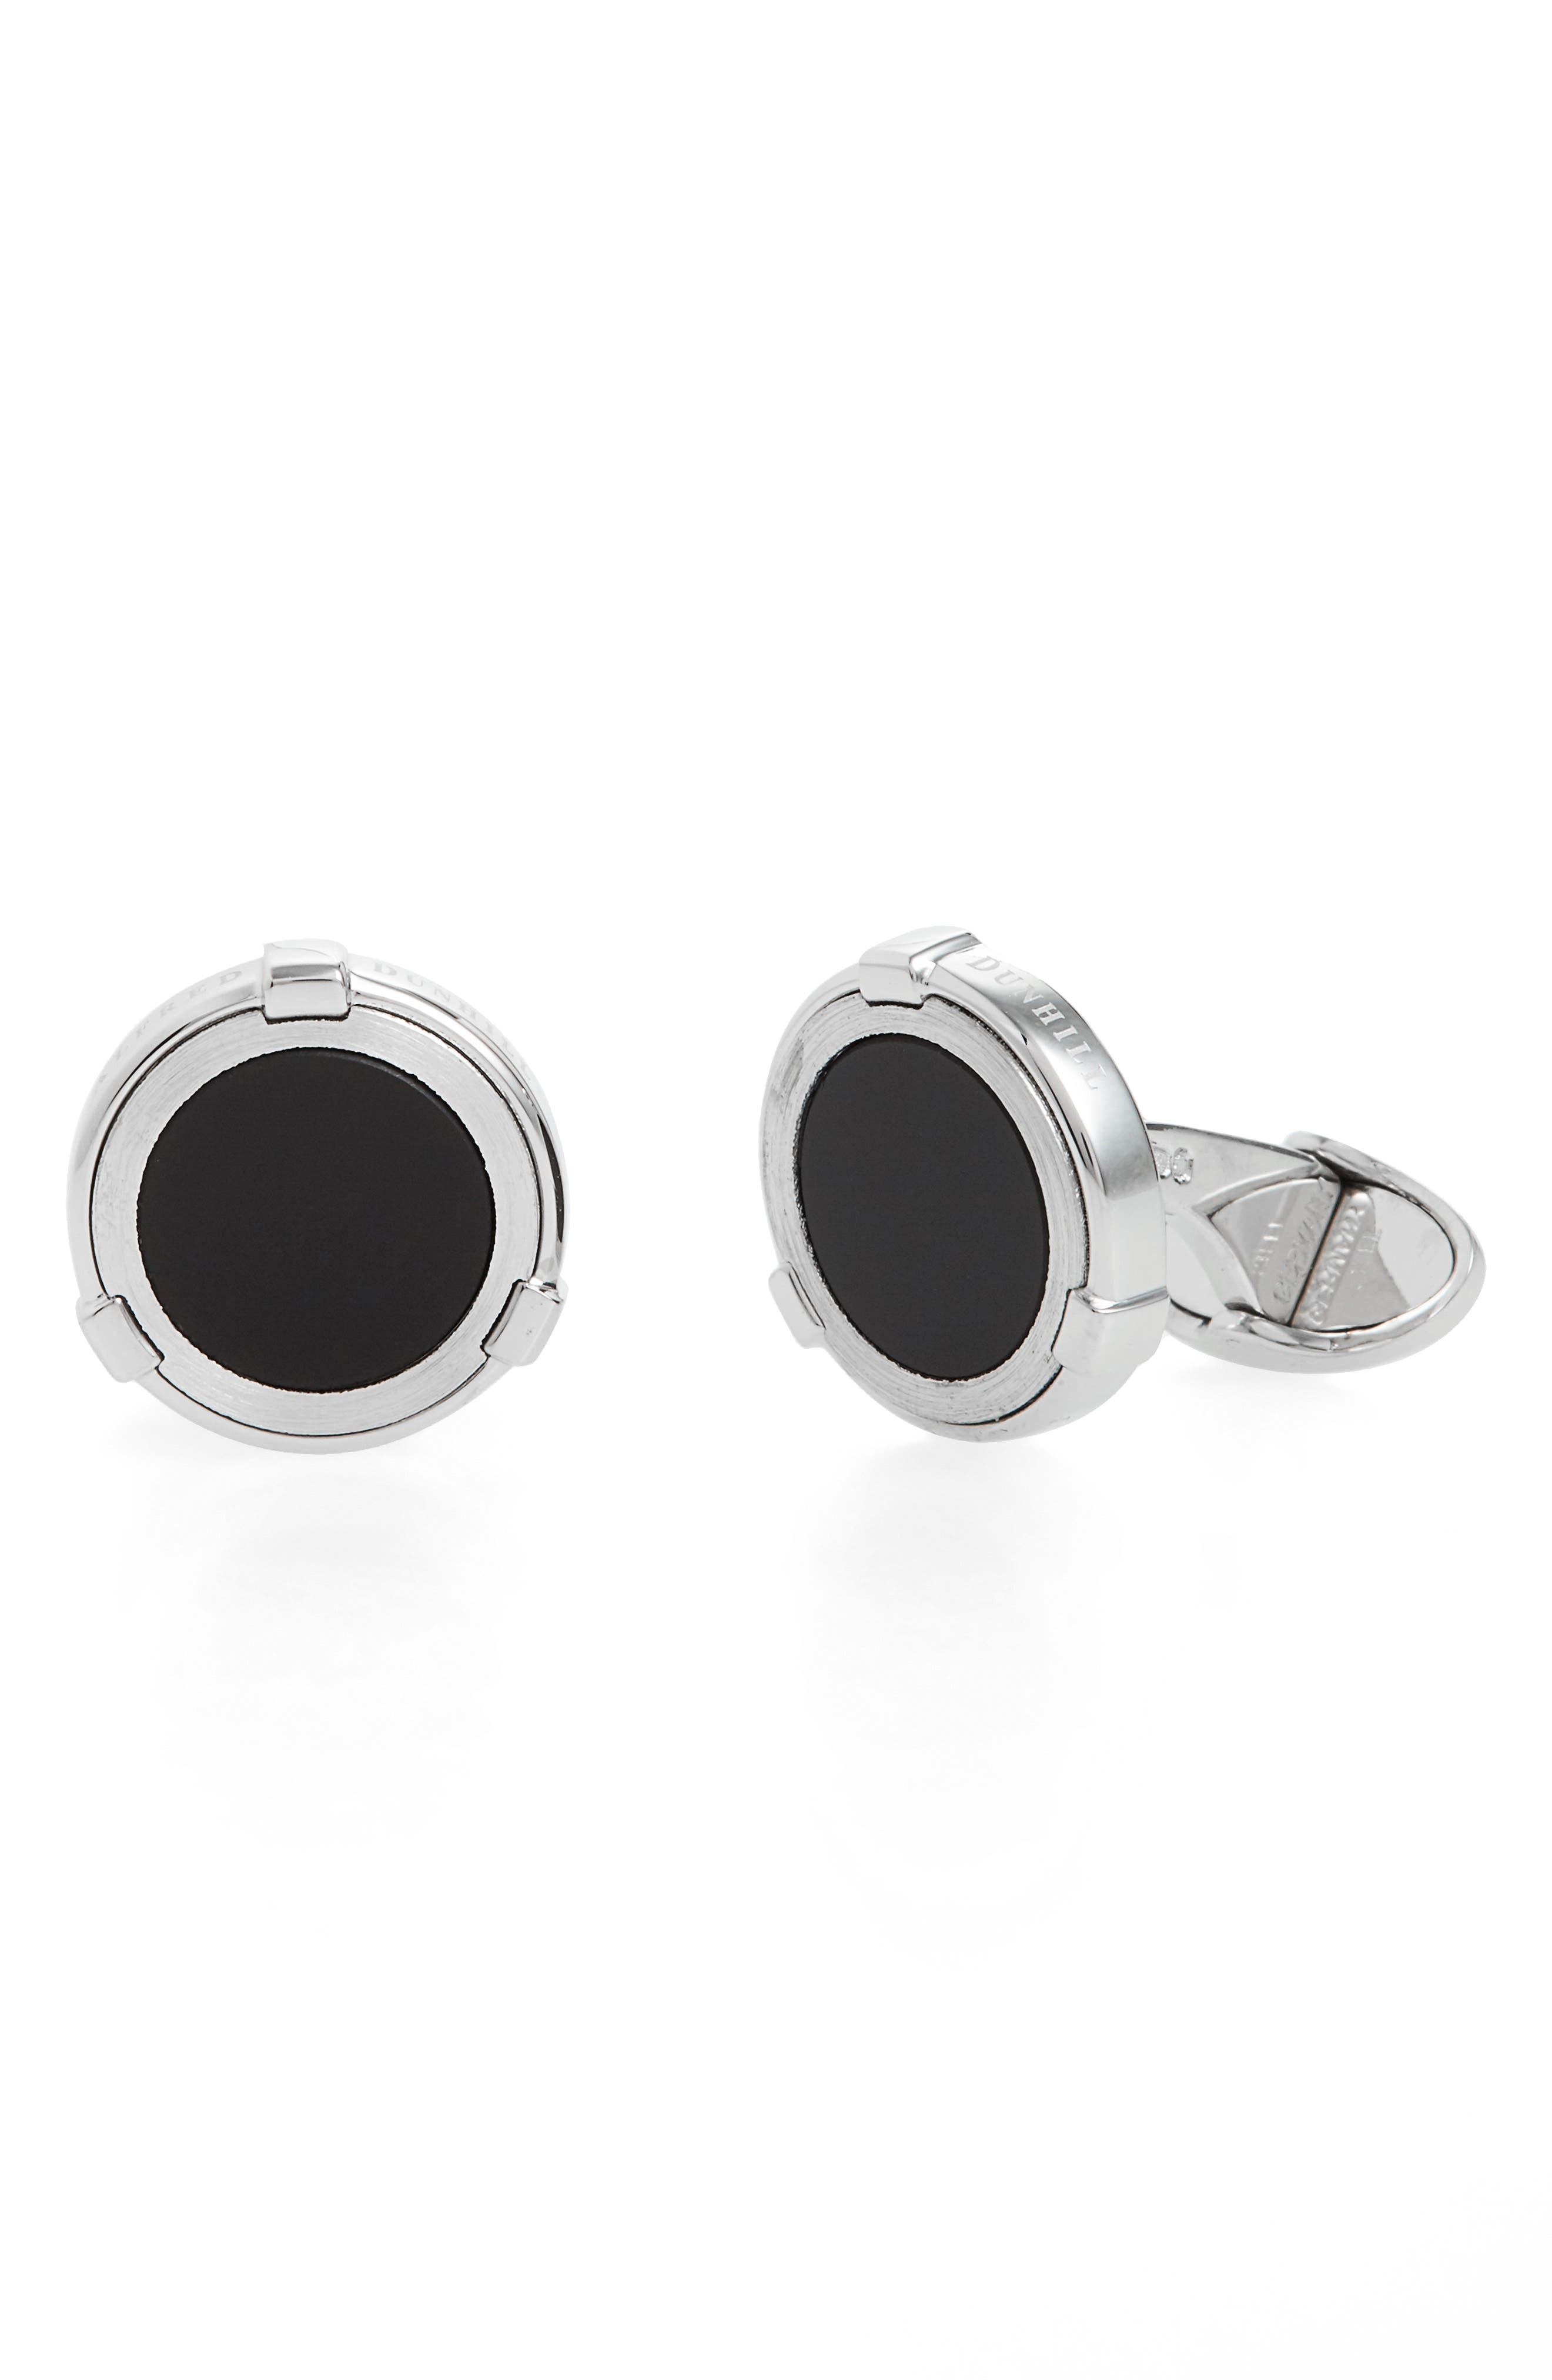 Latch Stone Cuff Links,                             Main thumbnail 1, color,                             Onyx/Silver